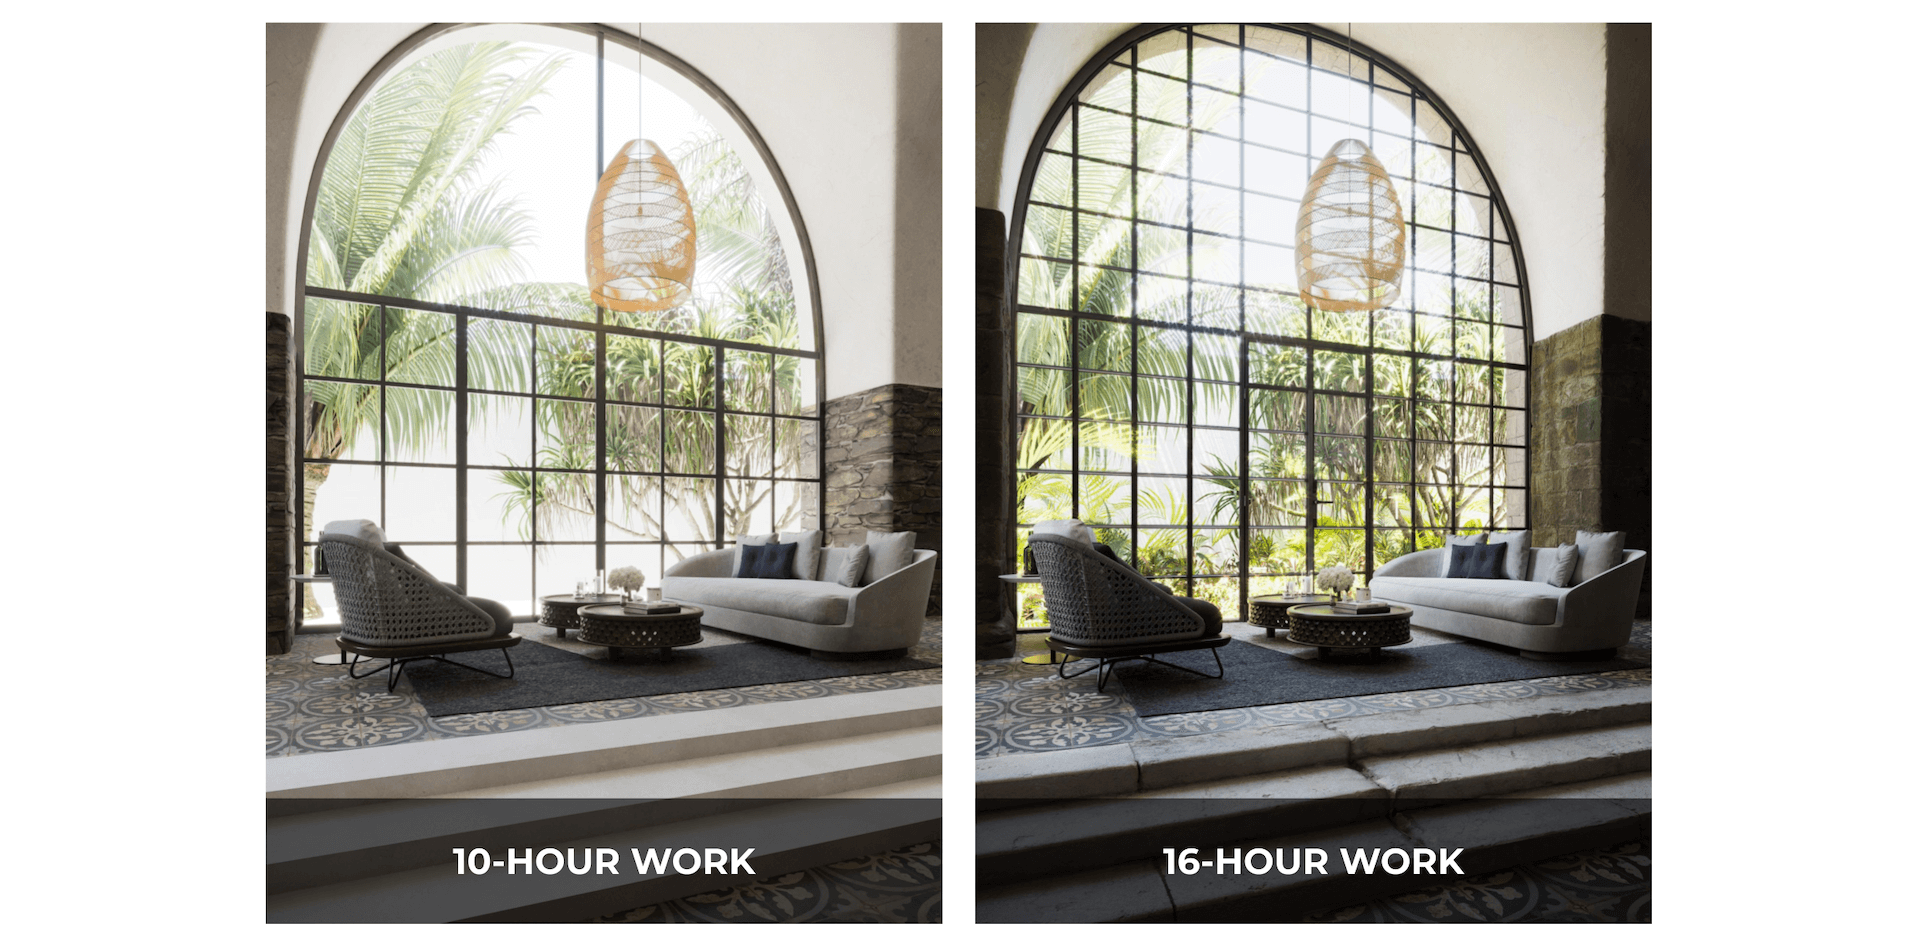 3D Render Quality Difference with Different Timeframes